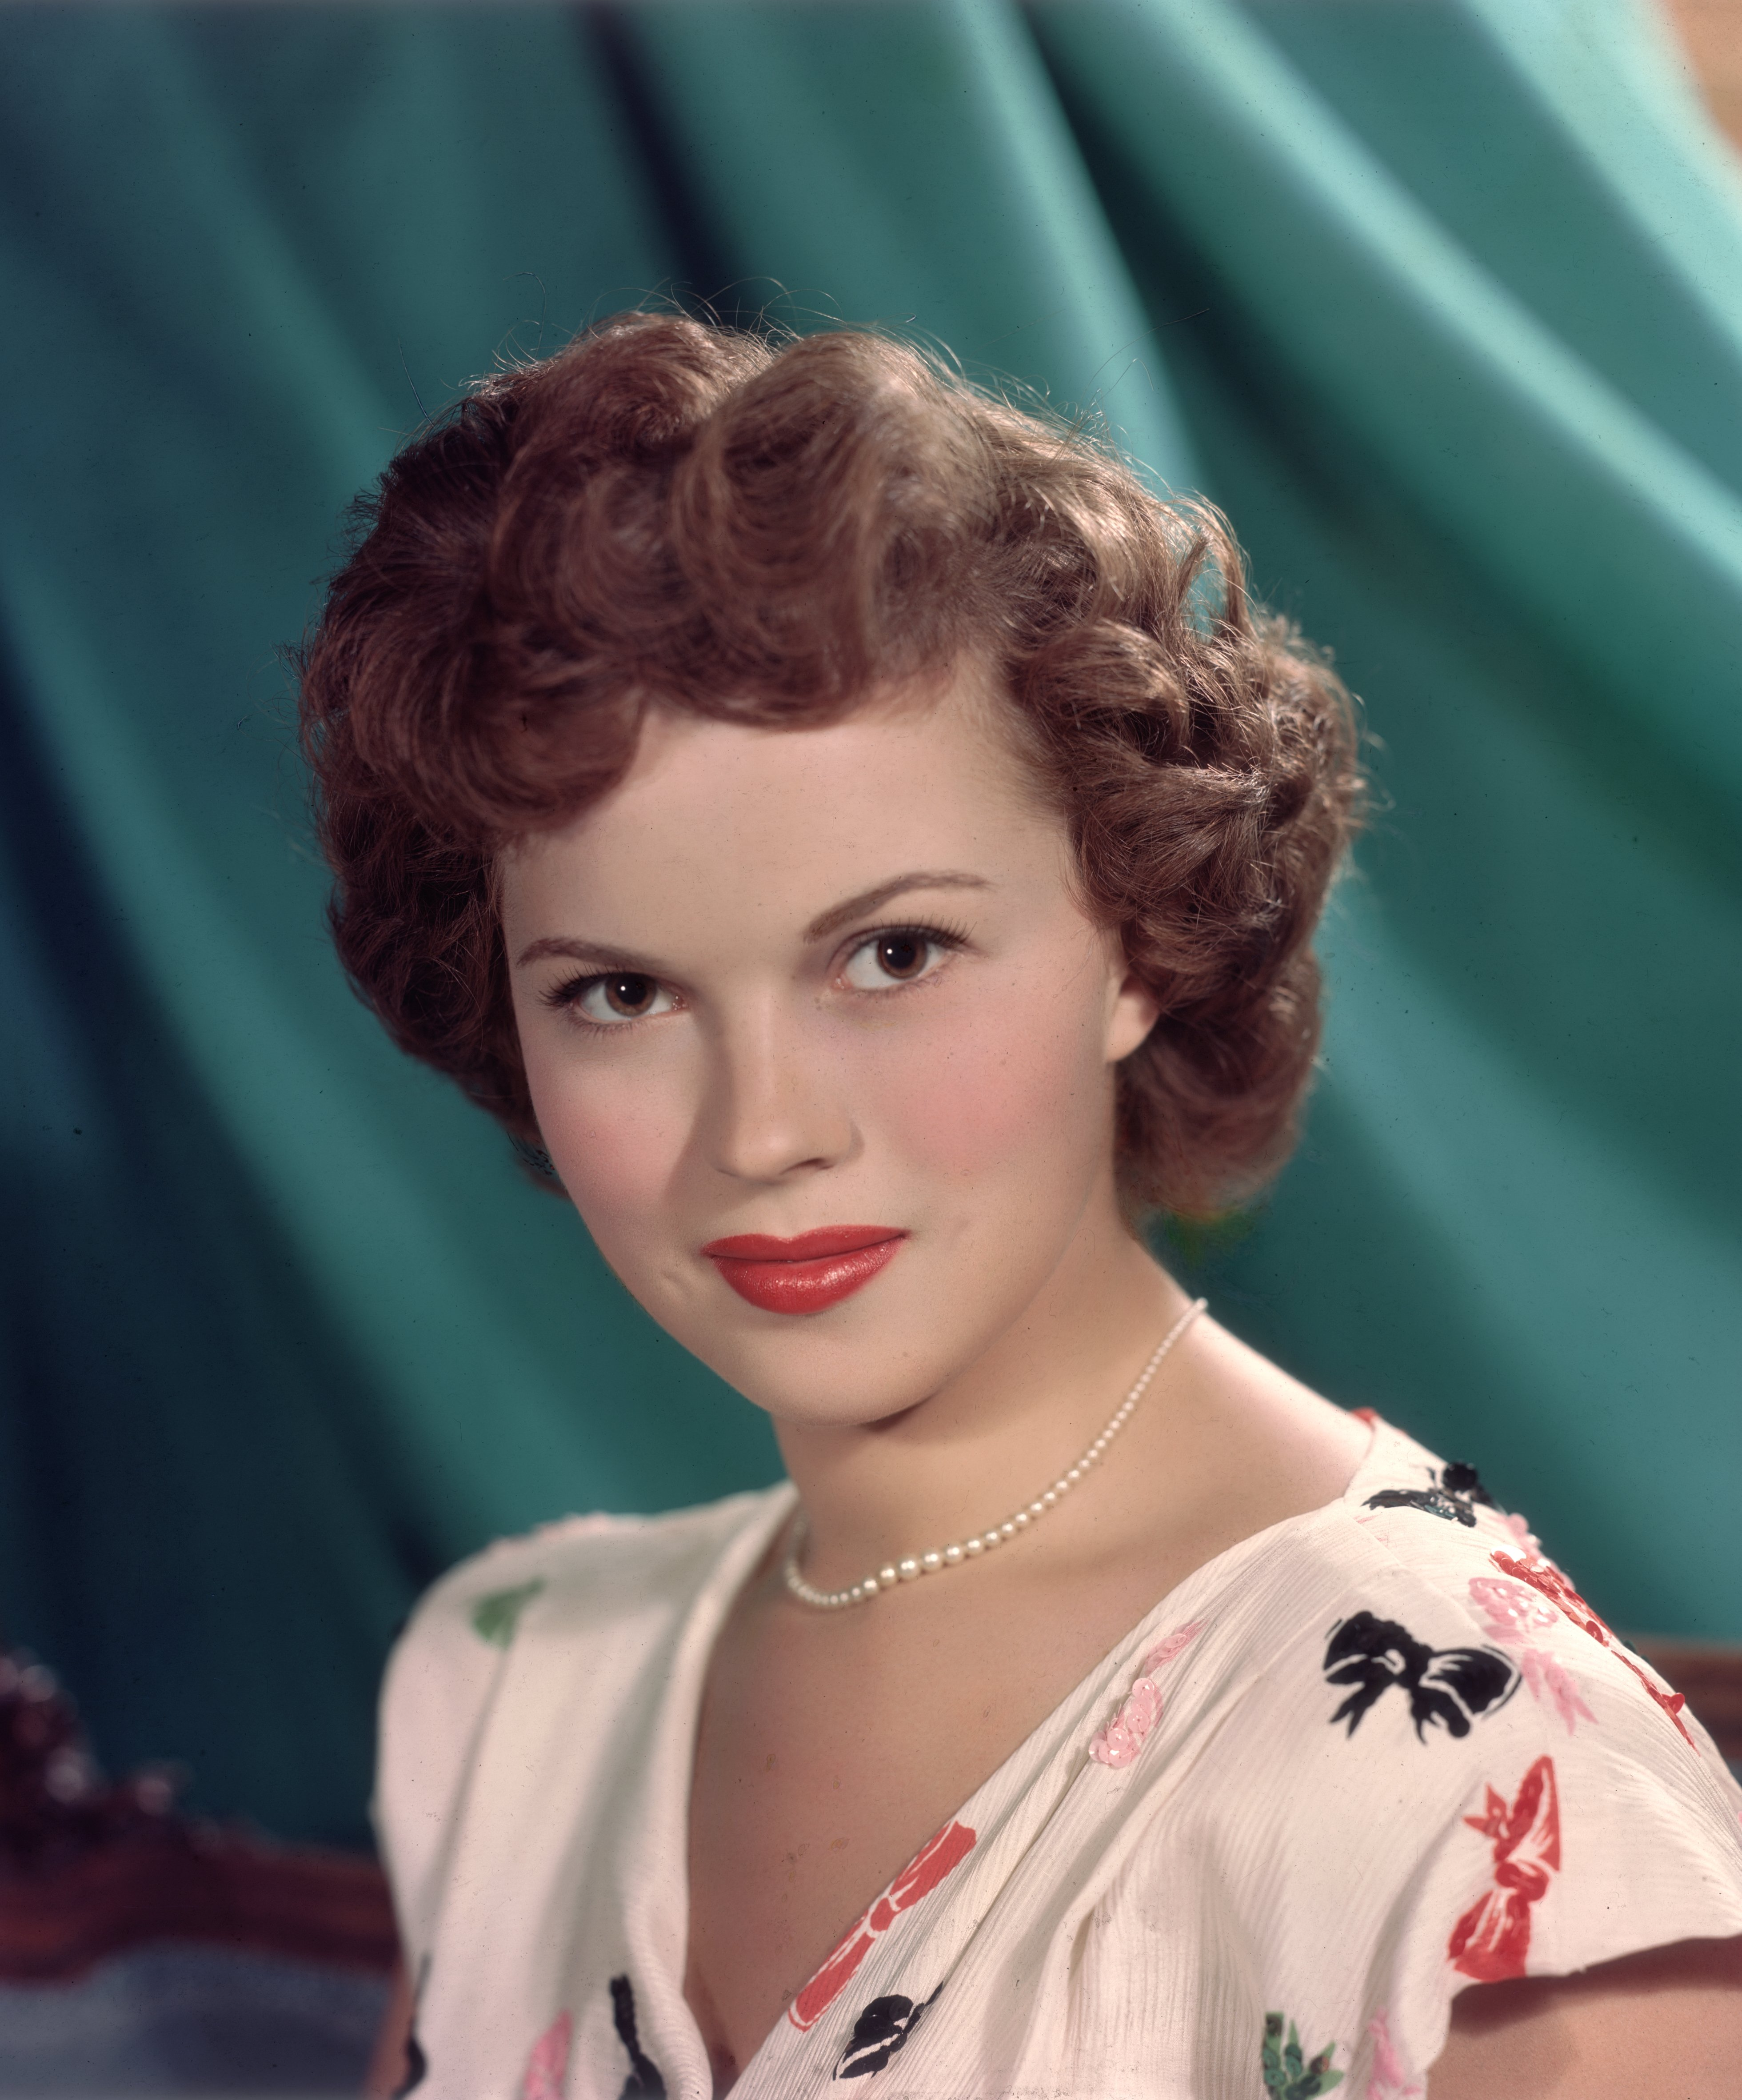 Headshot studio portrait of American actor Shirley Temple, in front of a green backdrop, wearing a short sleeve white blouse with a colored bows pattern and a pearl necklace. circa 1955 | Source: Getty Images